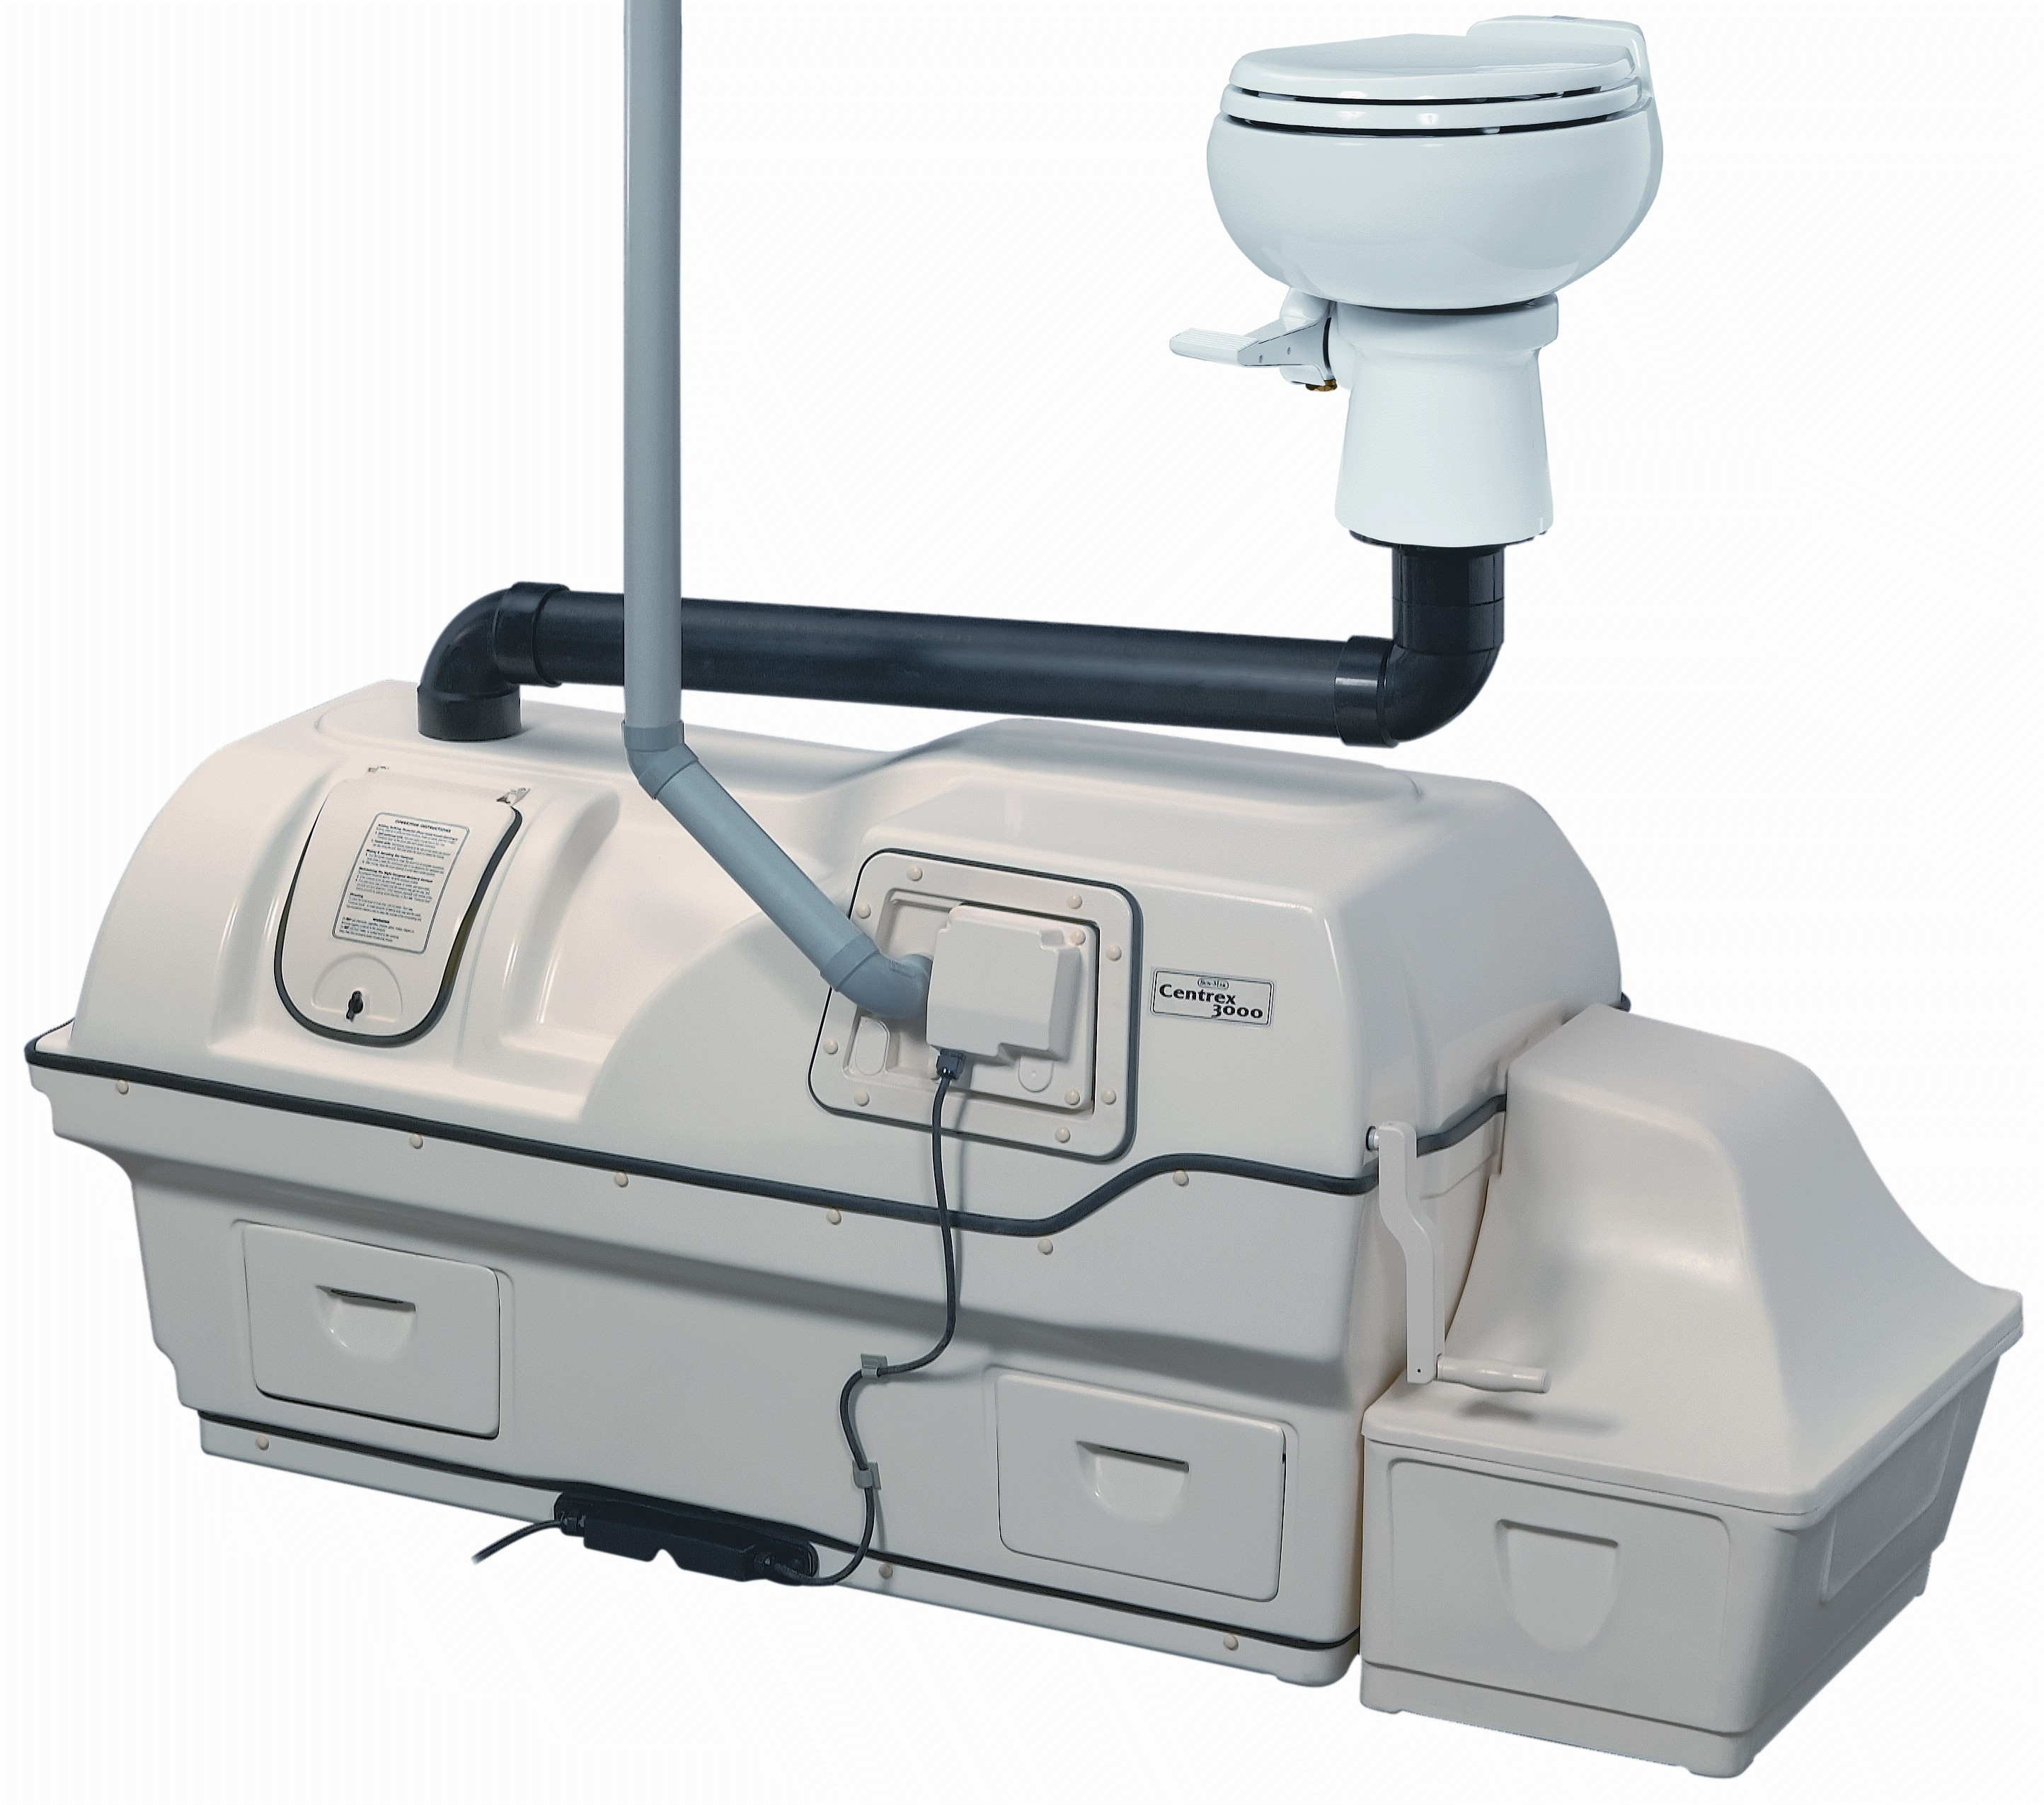 Centrex 3000 Electric Composting Toilet System